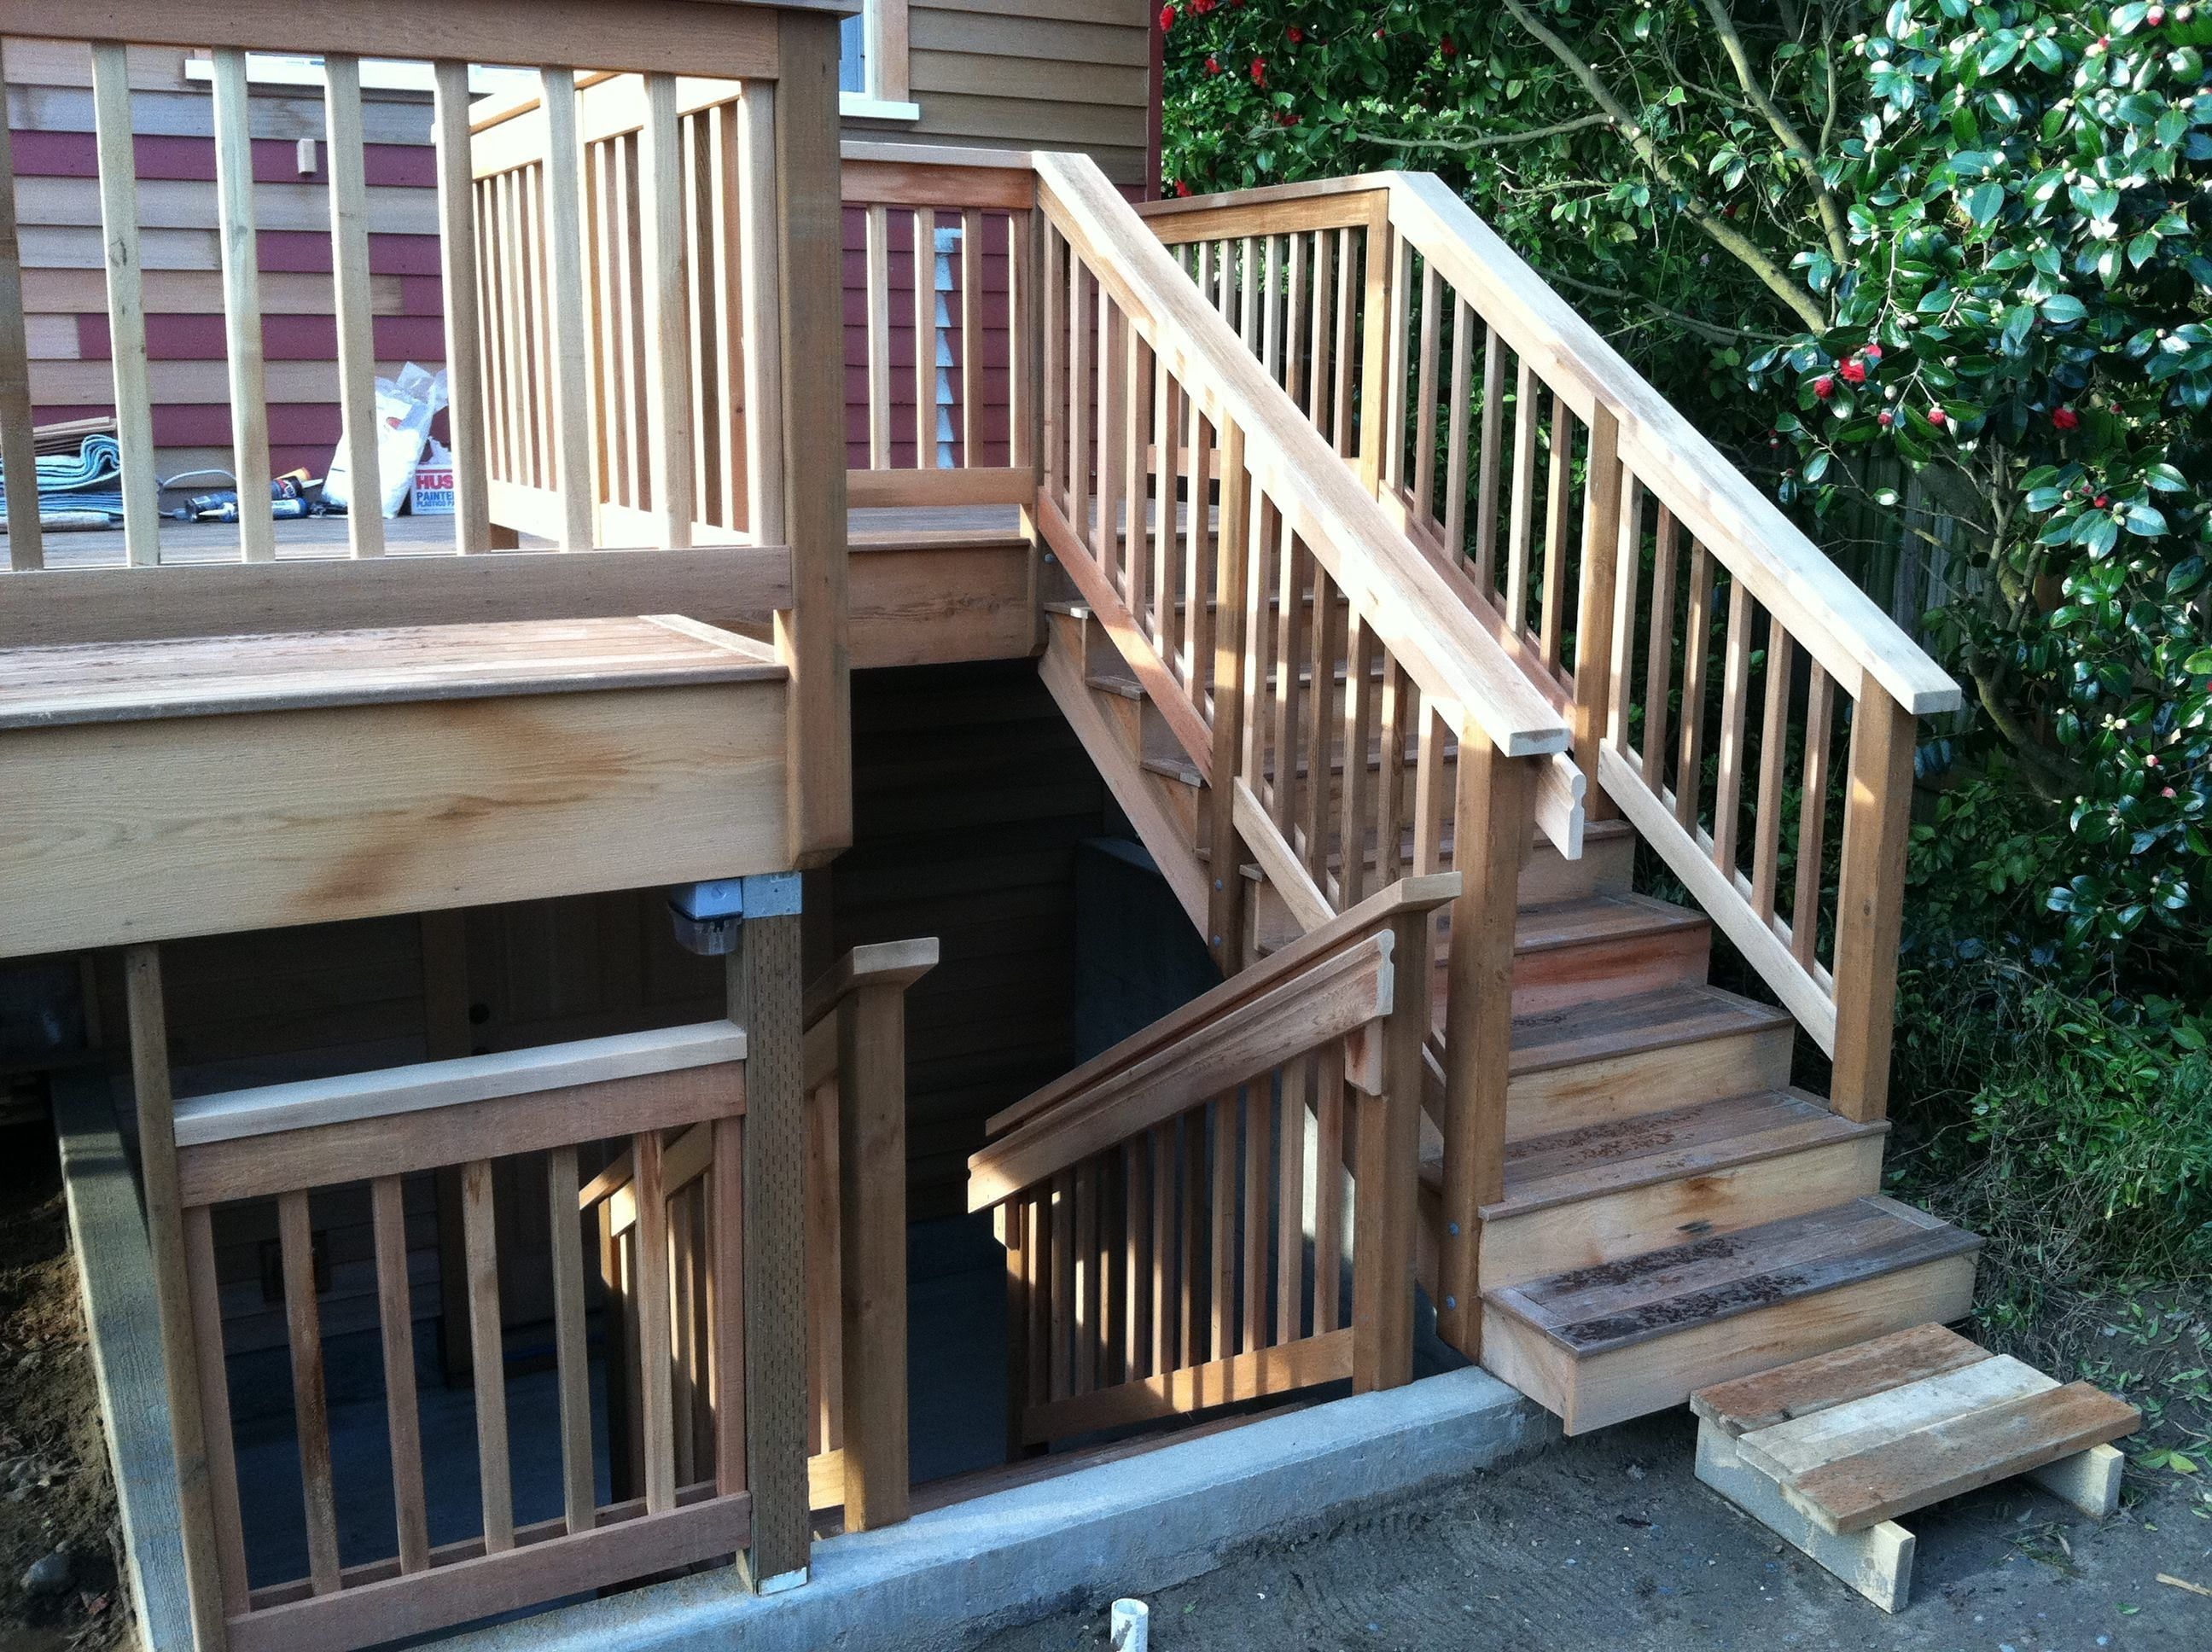 How To Cut Stair Stringers By Seattle Remodel Contractor Westbrook Resto.